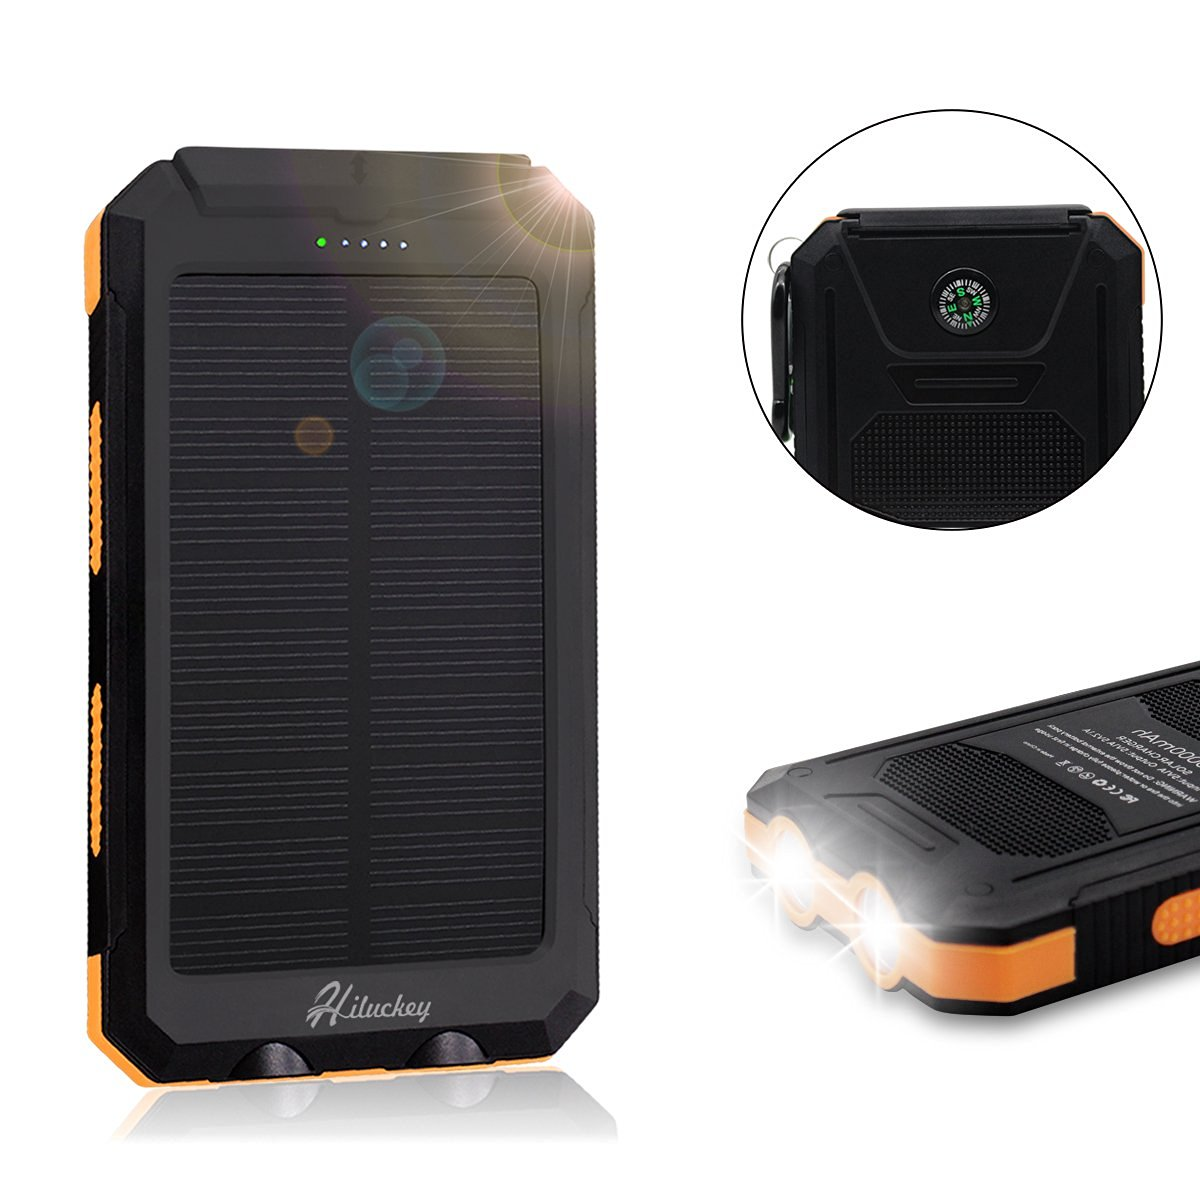 Hiluckey Solar Charger, Solar External Battery Pack, Portable 10000mAh Dual USB Solar Battery Charger Power Bank Phone Charger with LED Portable Solar Phone Charger for Phones